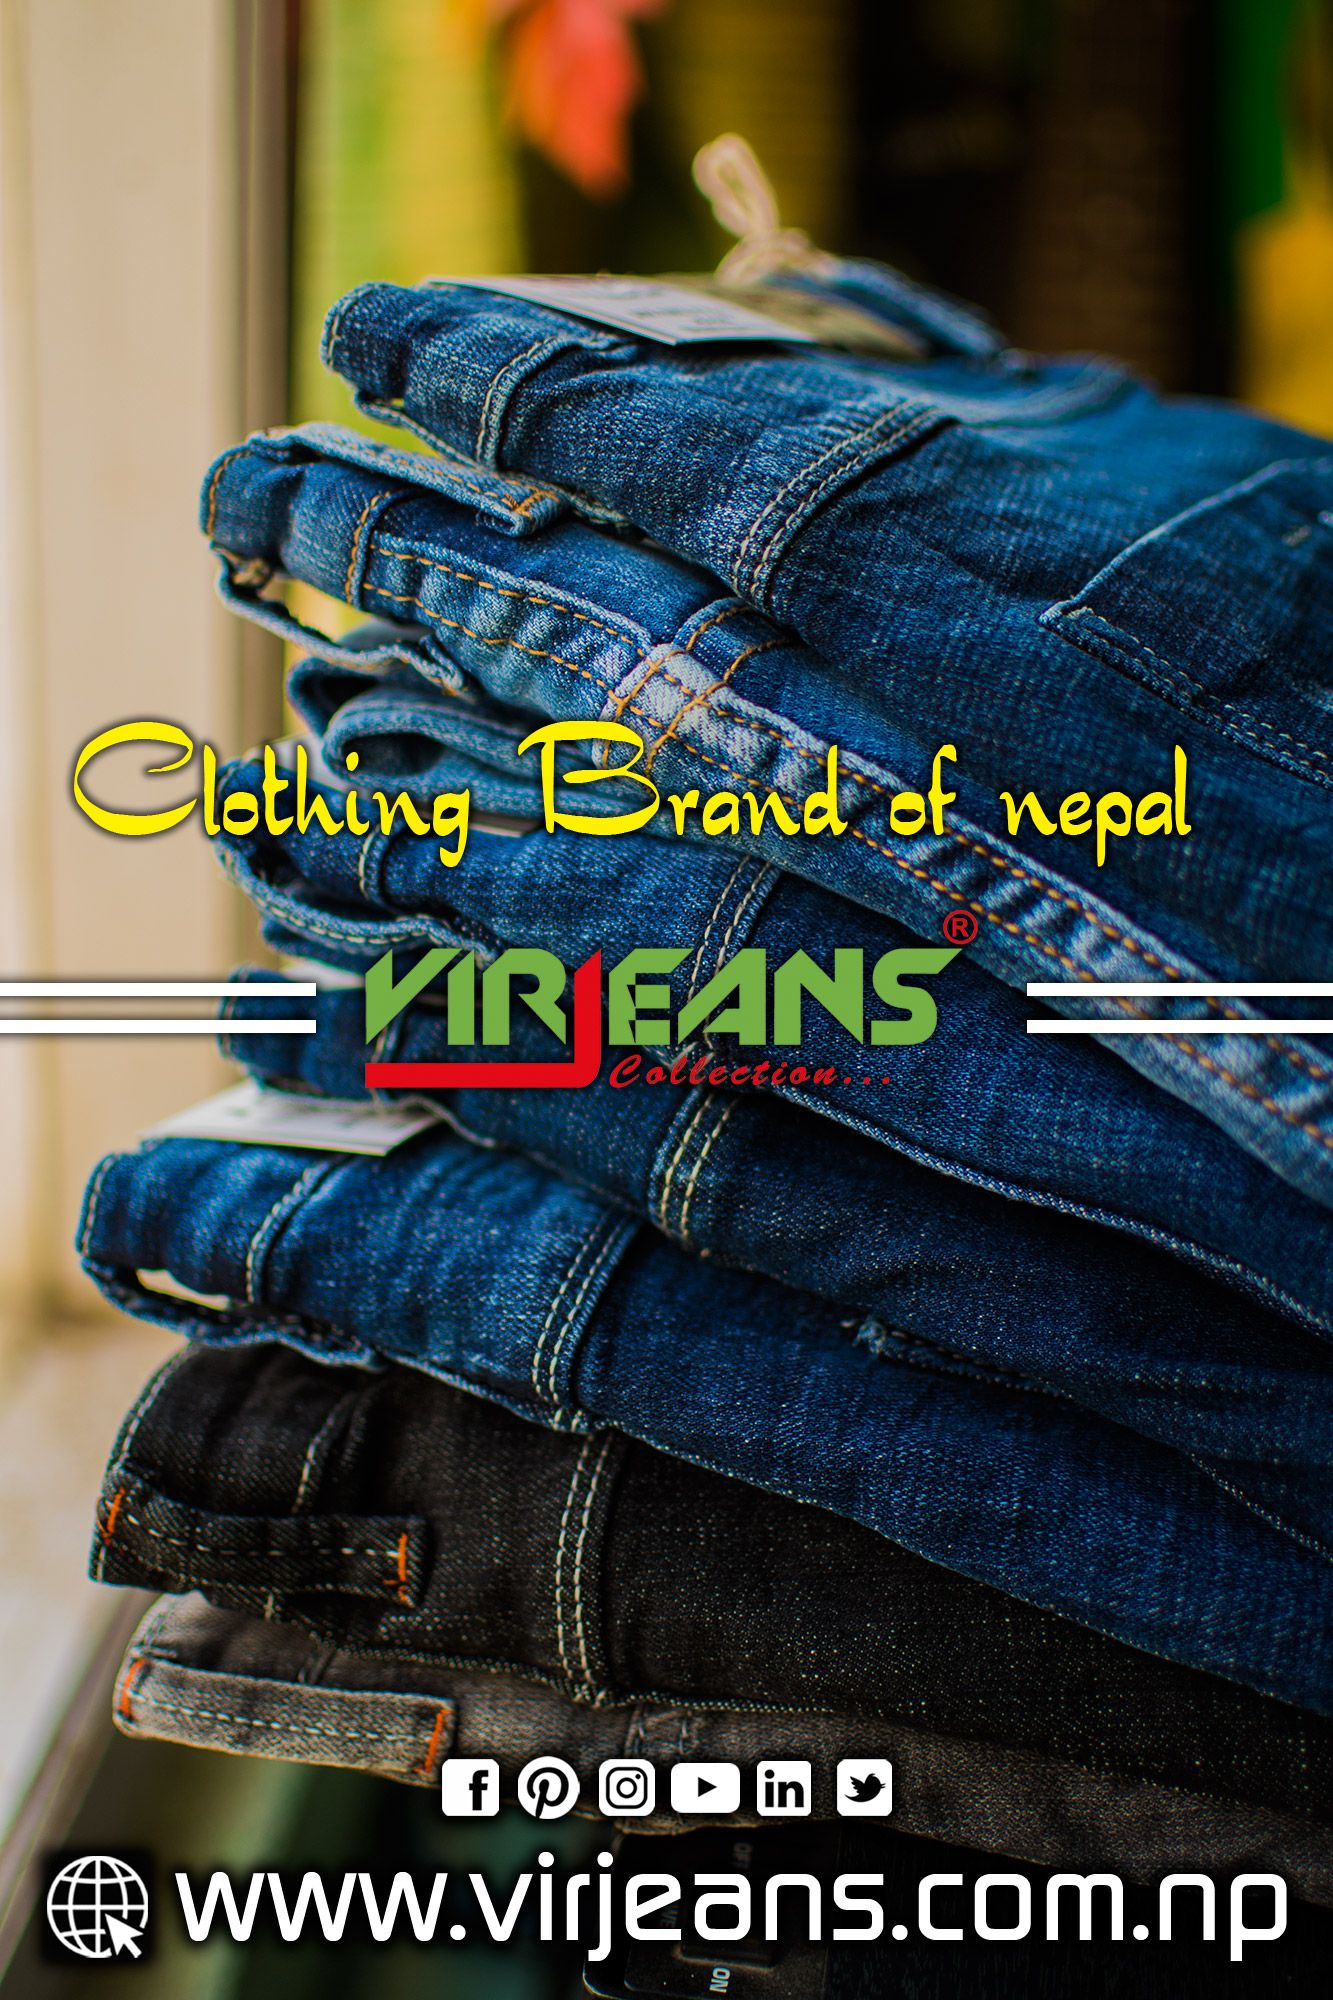 Virjeans Clothing Brand Of Nepal Virjeans Magazine Denim In Nepal Top Designer Jeans Bran Online Shopping Clothes Nepal Clothing Popular Clothing Brands